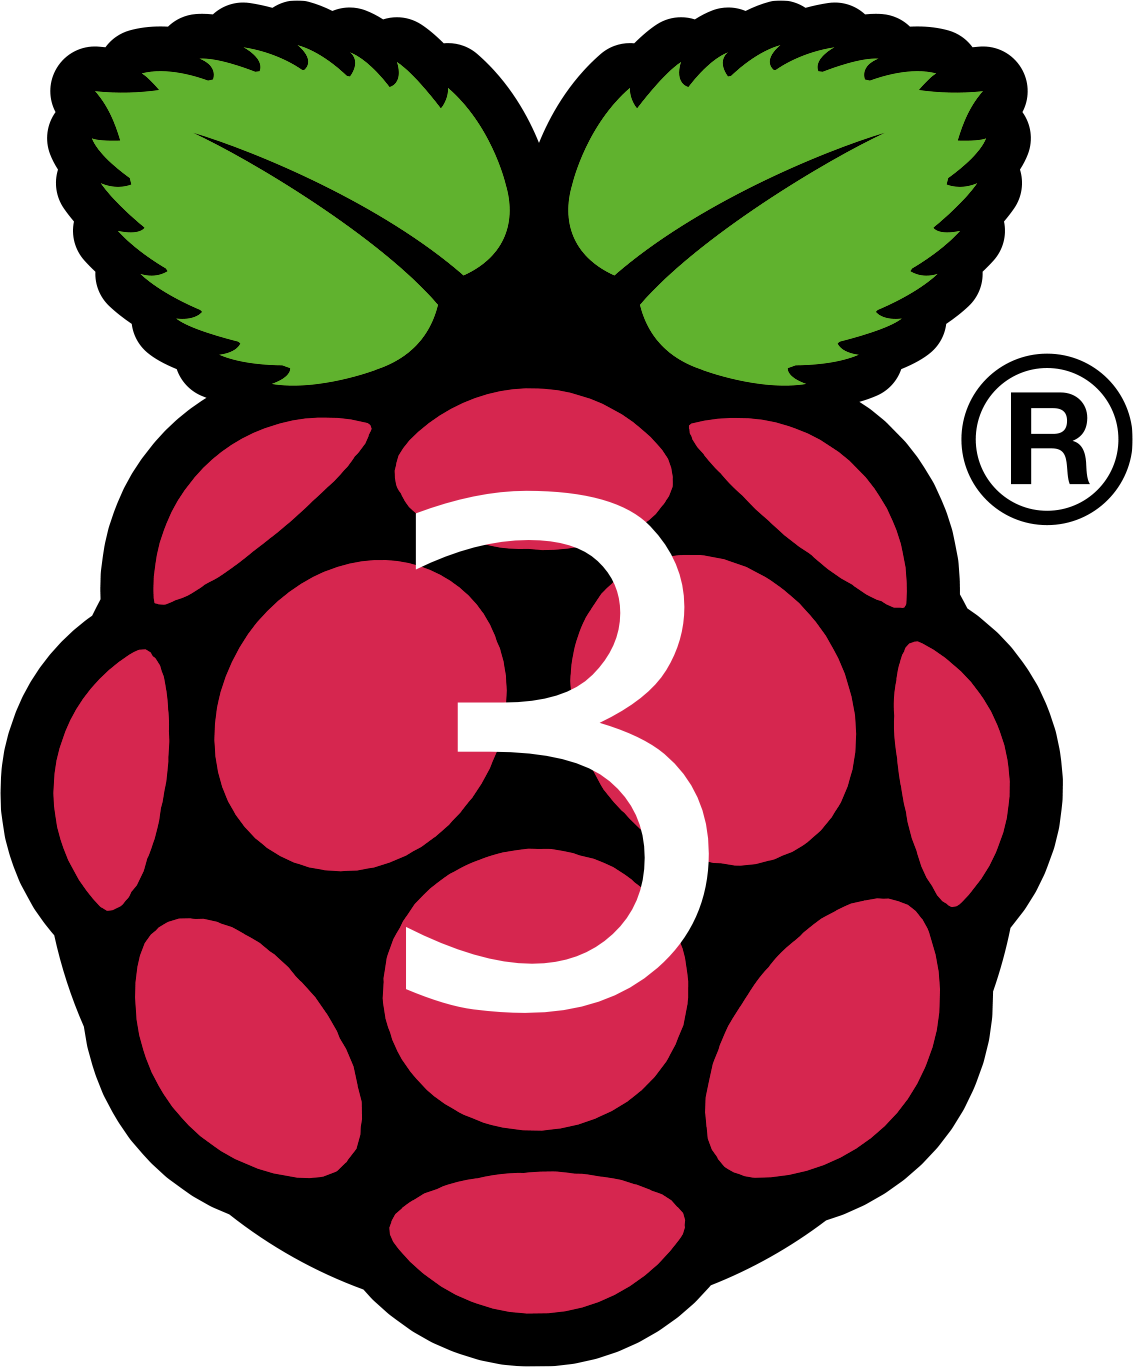 Getting Started with Raspberry Pi Part 3